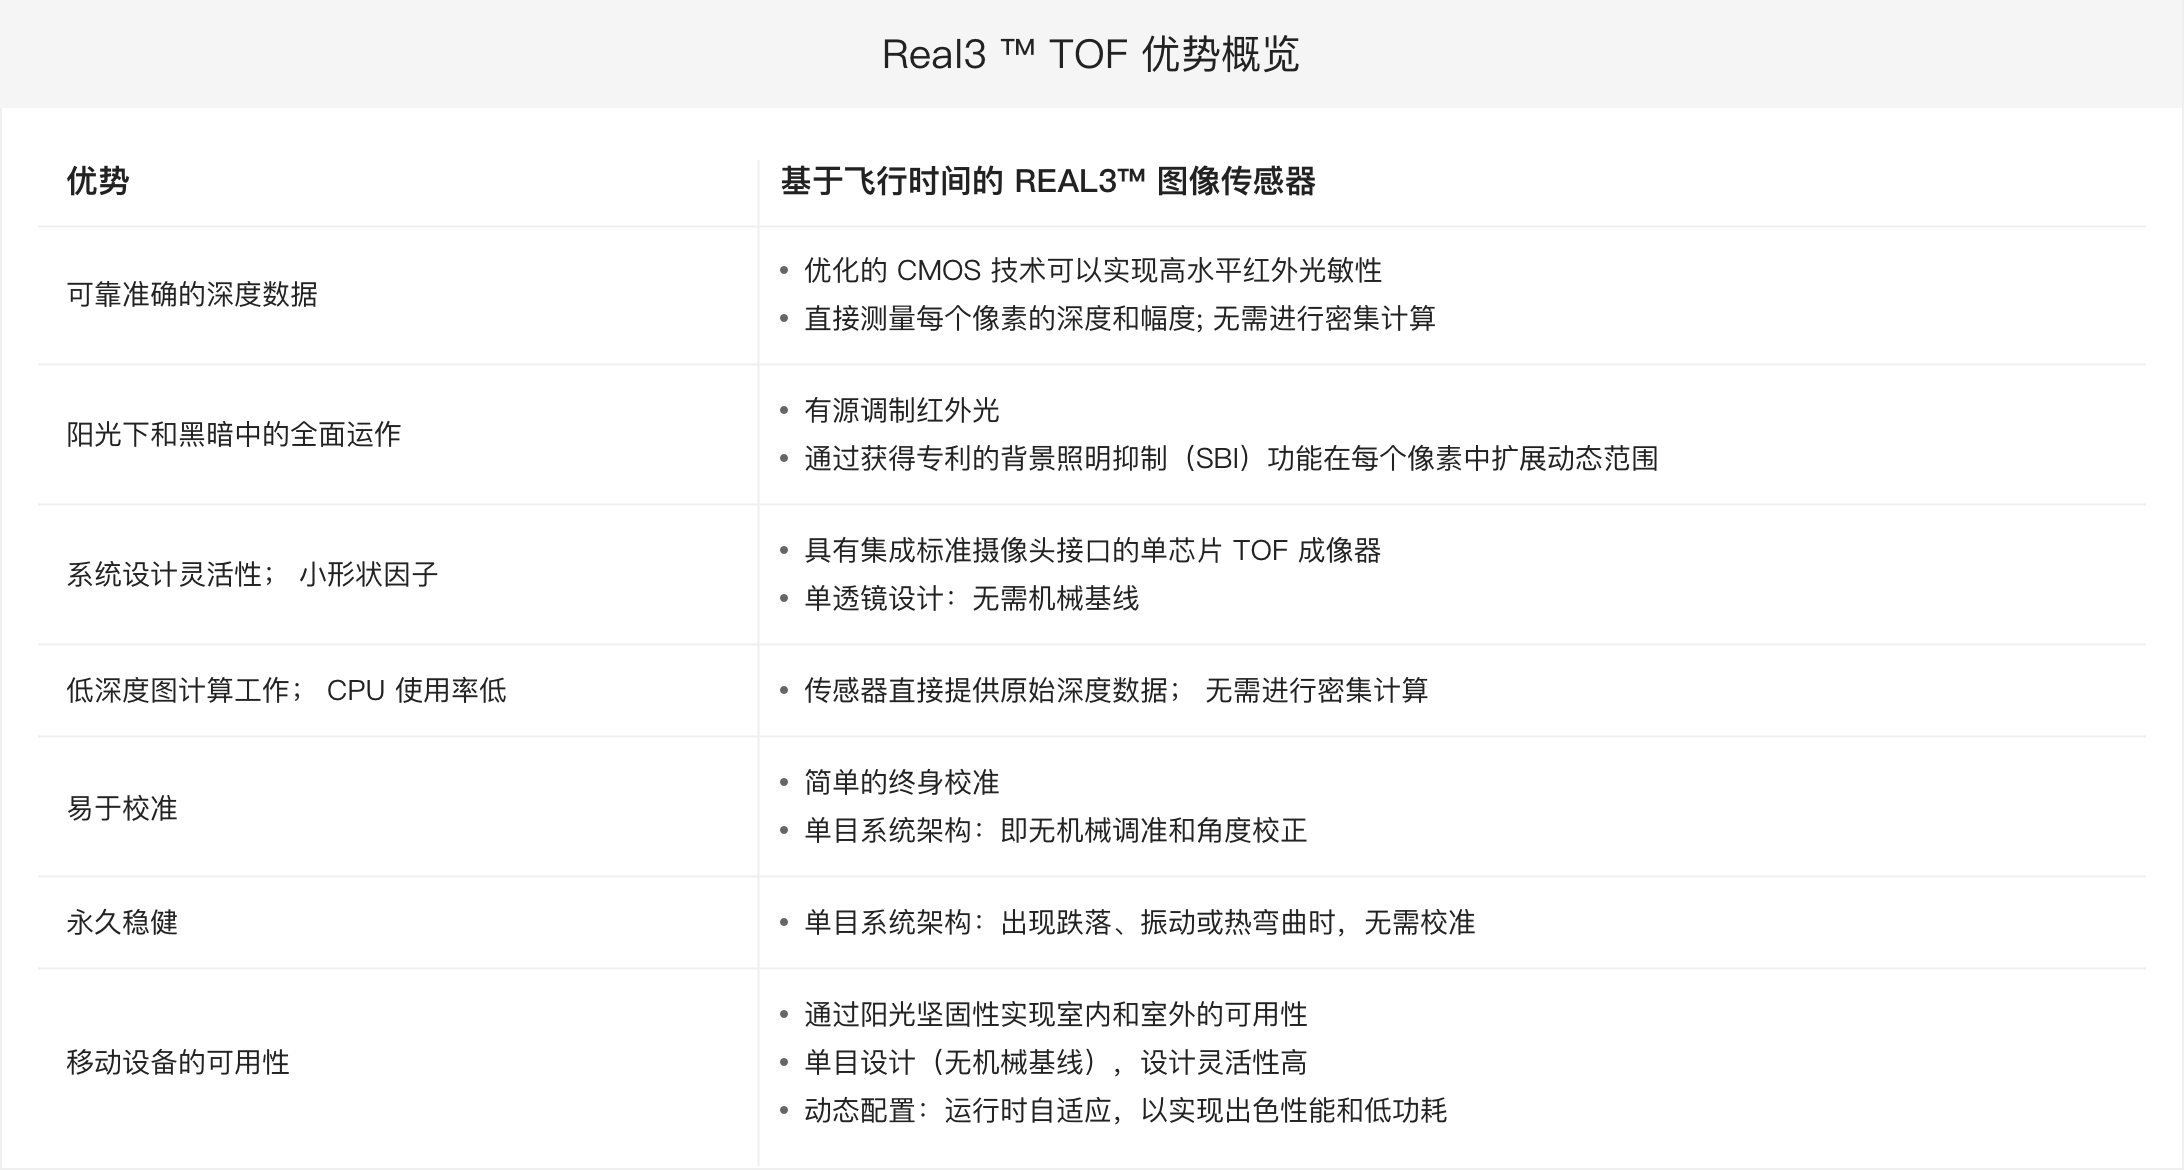 Real3 ™ TOF 优势概览